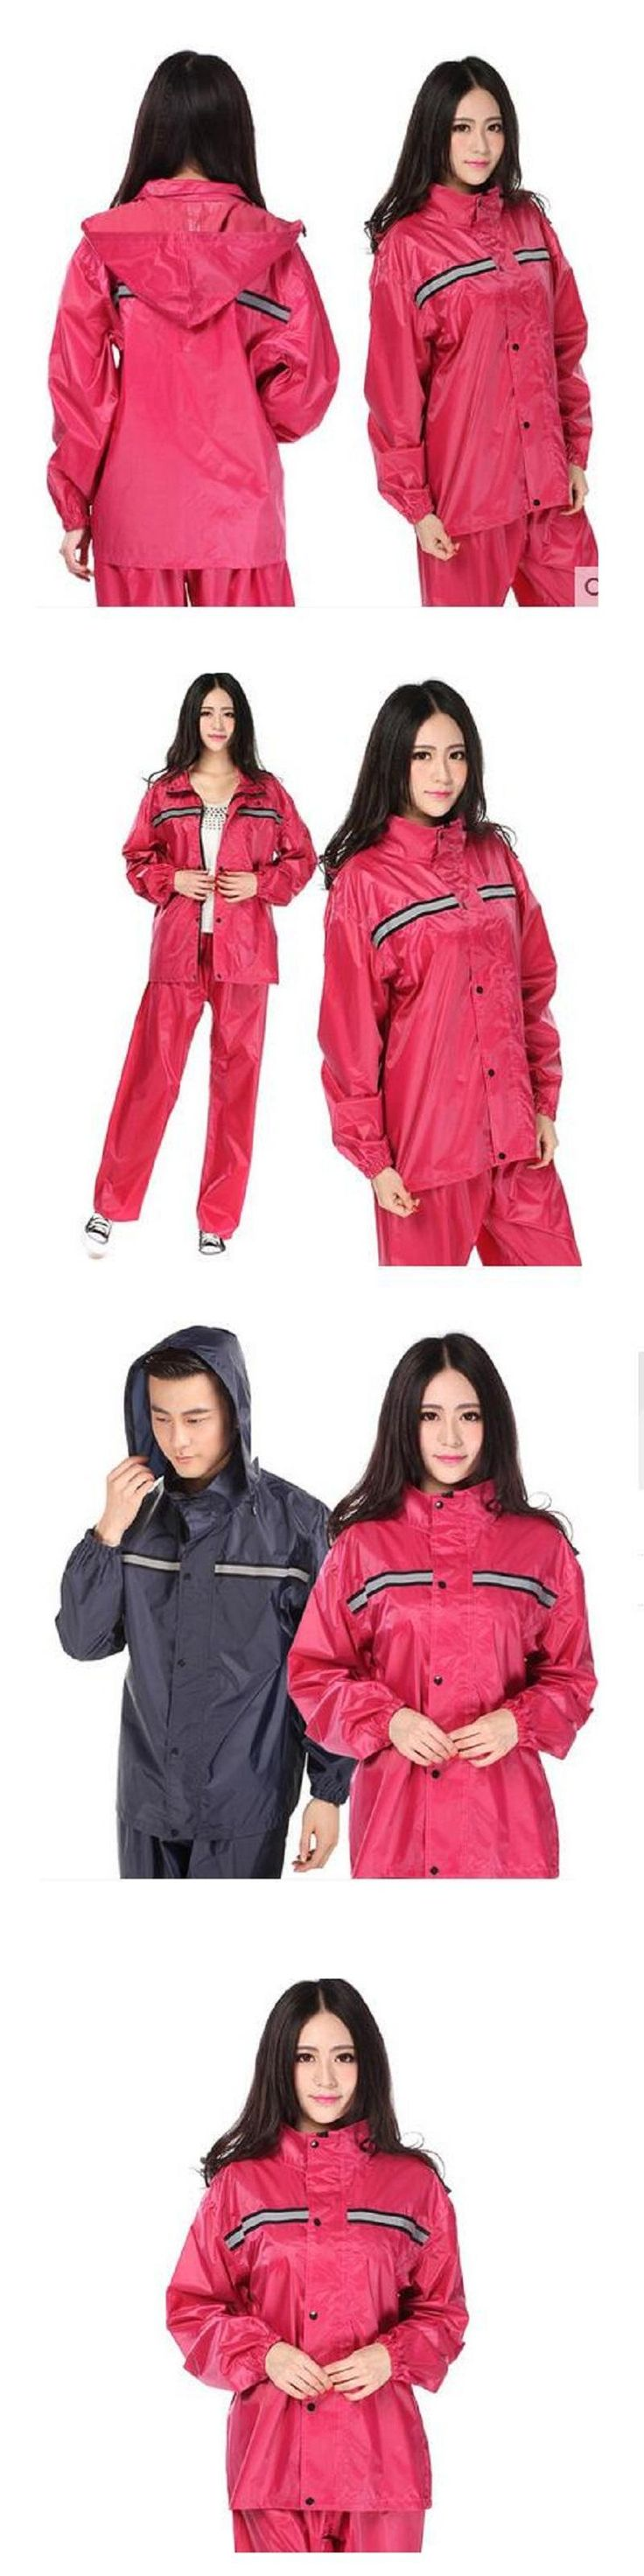 Impermeable Raincoat Women/Men Rainwear 2017 Fashion Hooded Rain Coat Motorcycle/Electrombile Bicycle Raincoat Women/Men